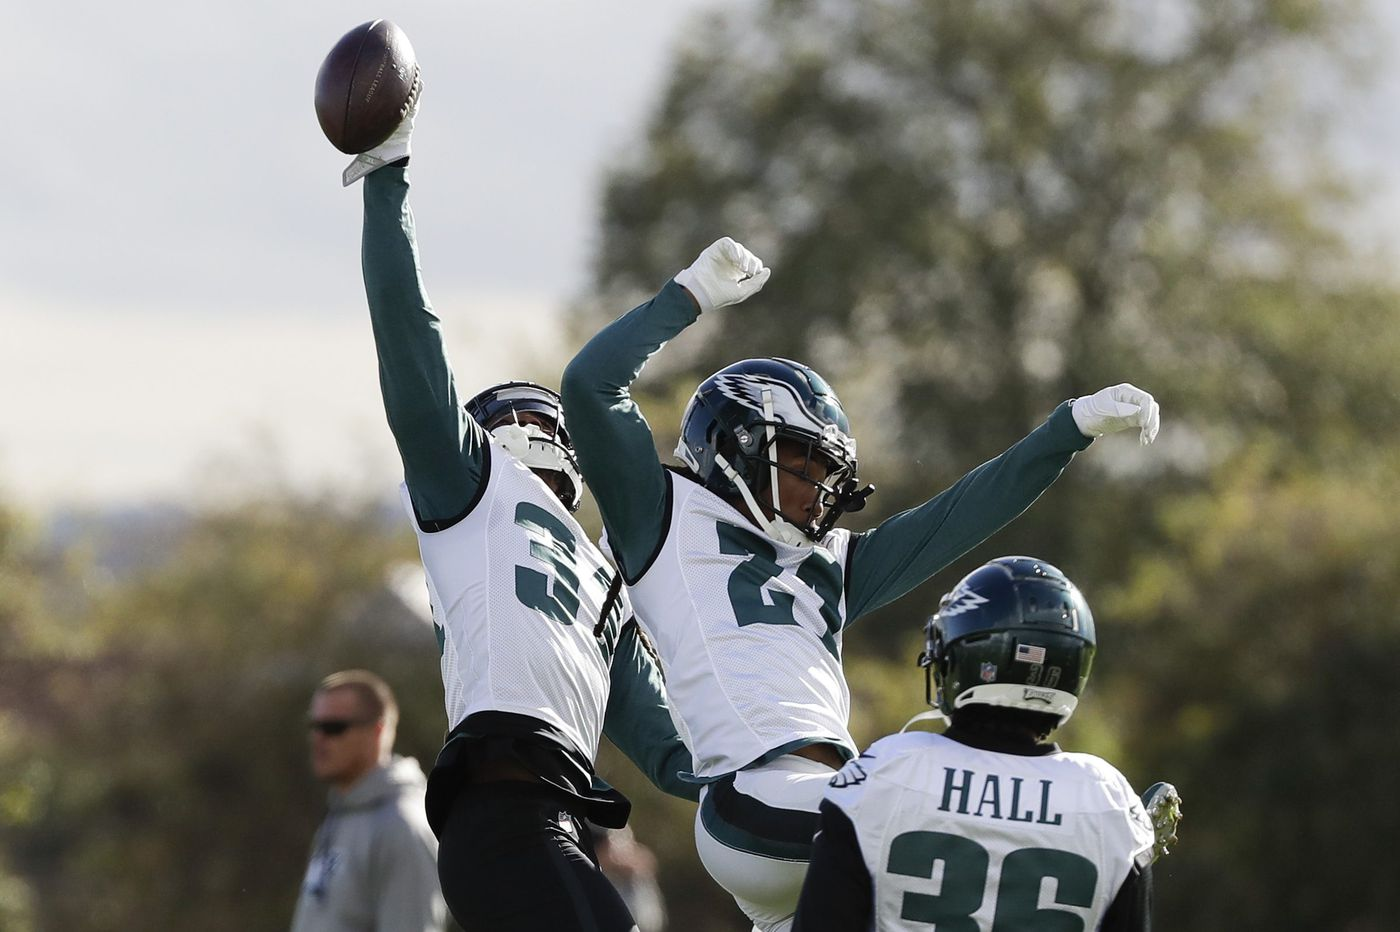 Eagles-Jaguars: Our beat writers' predictions